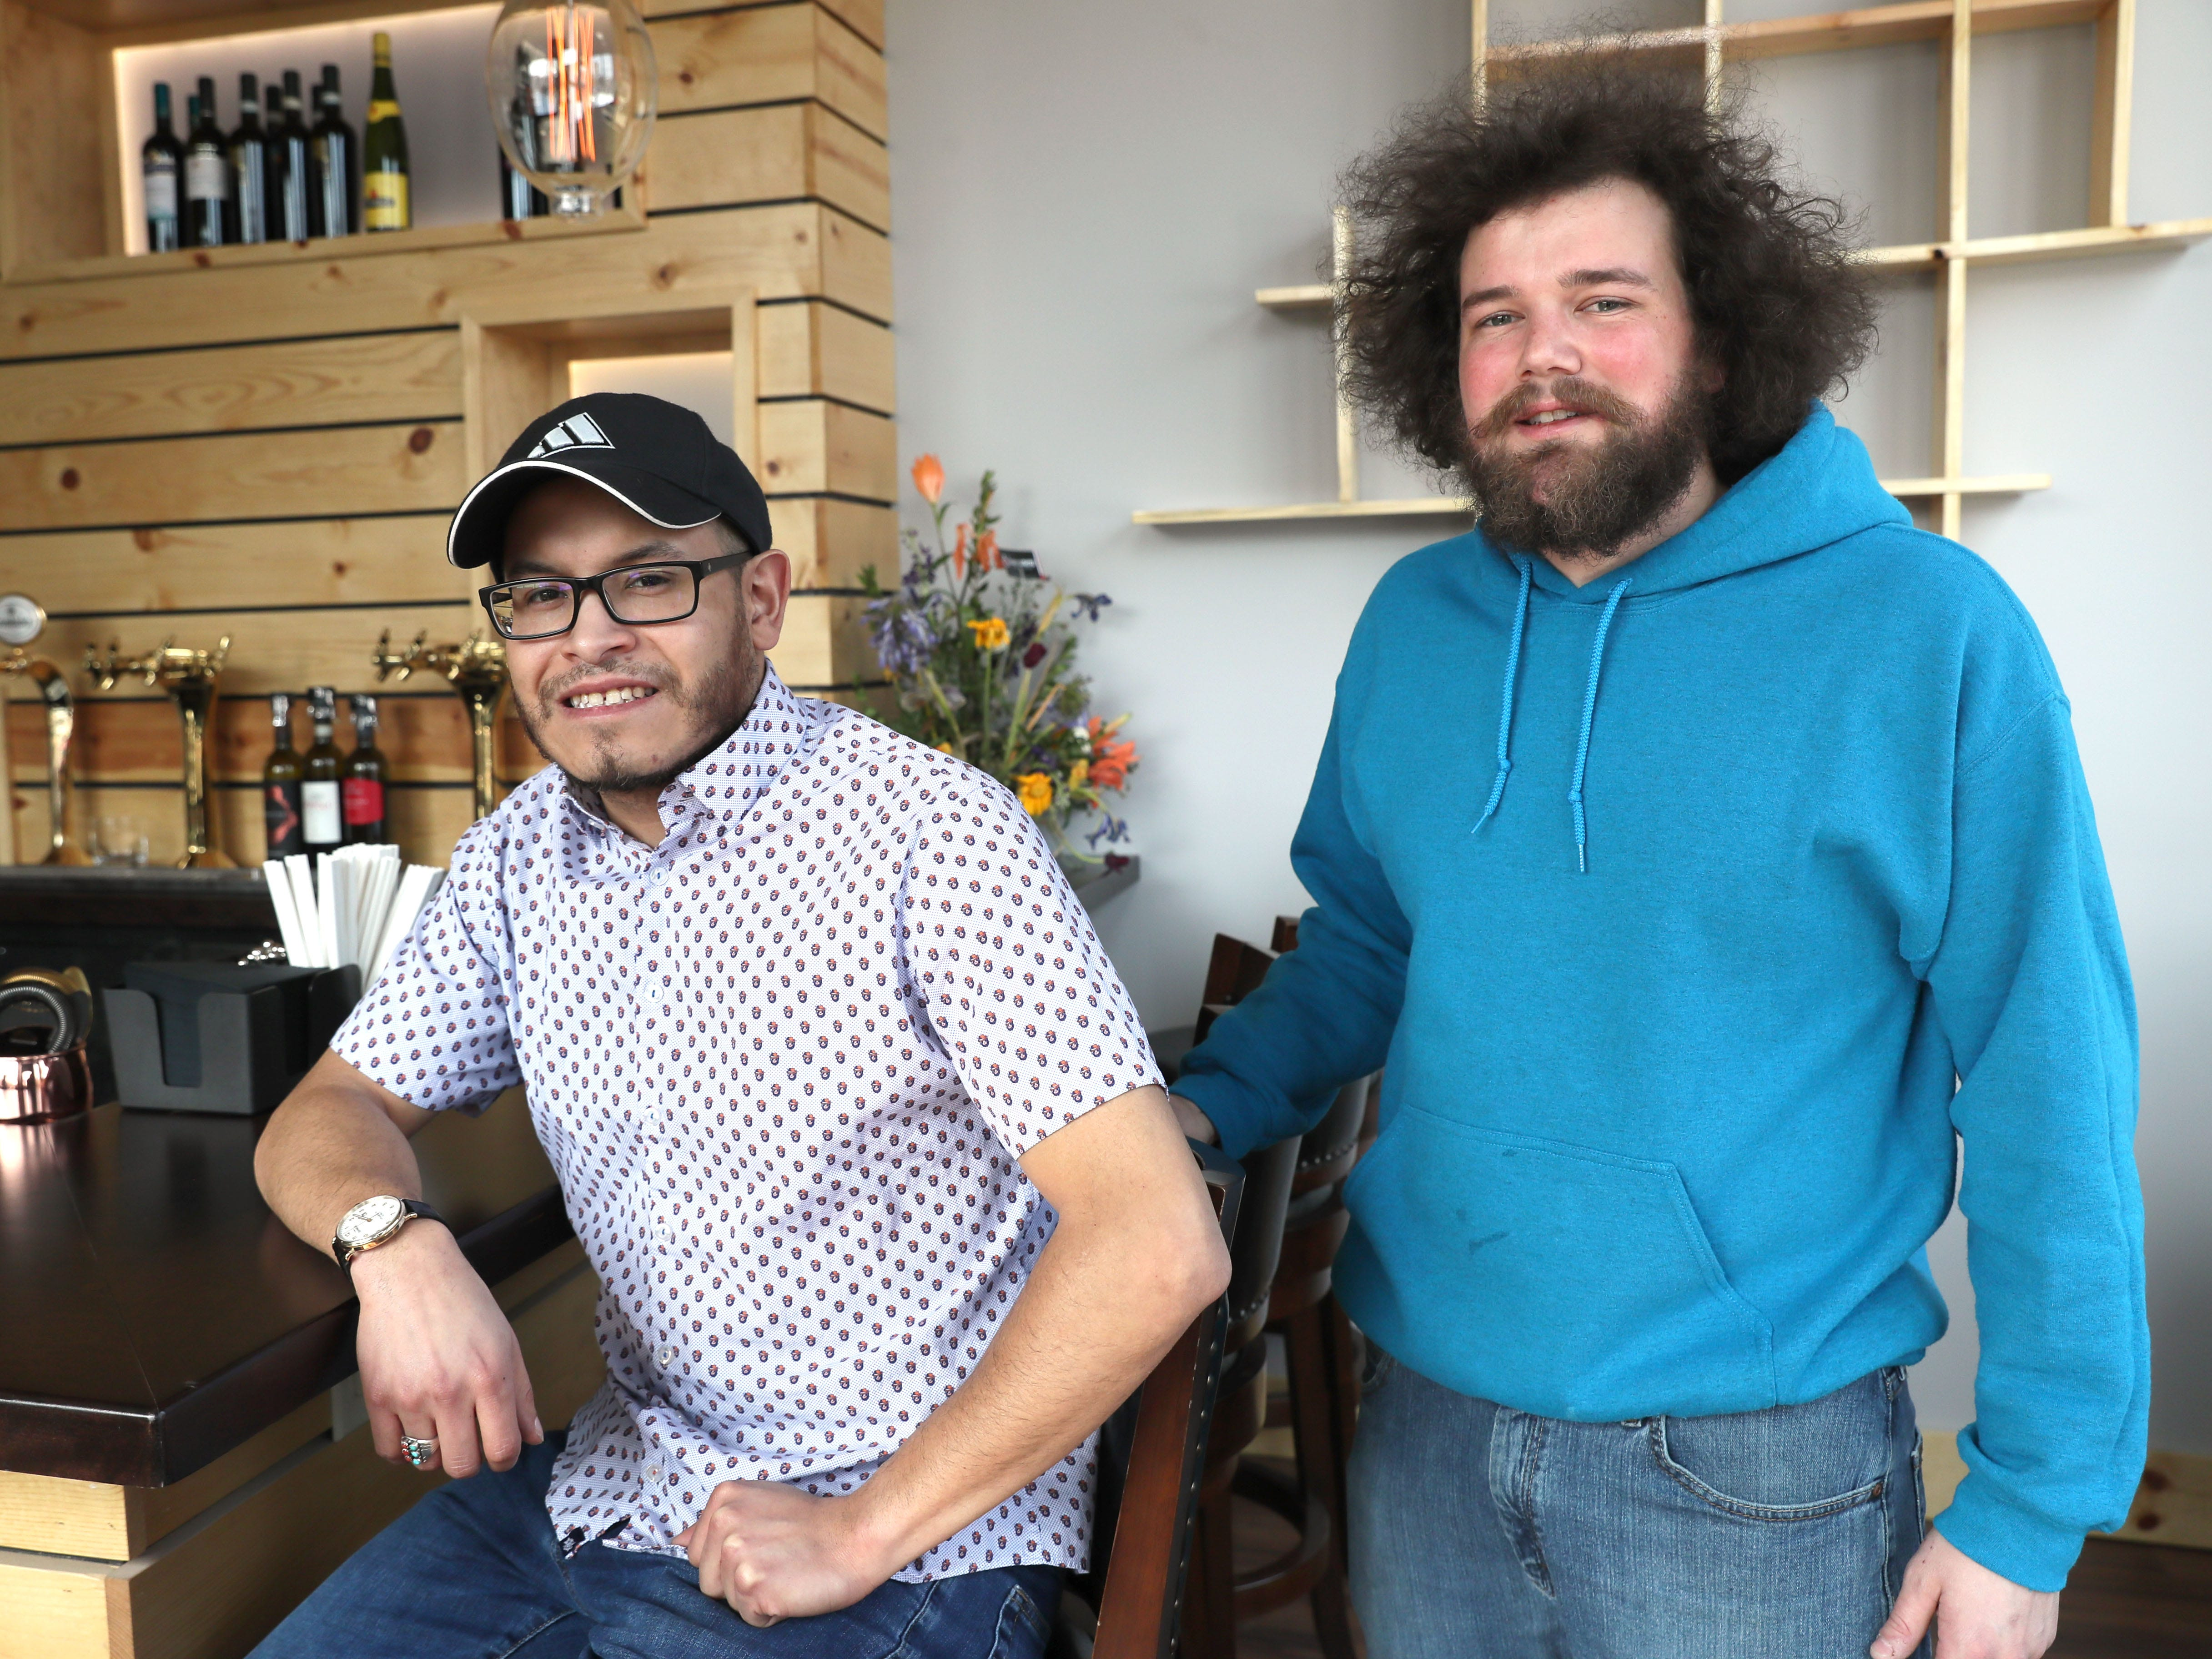 Taylor Layton (left) and Alex Sperry are ready to open Baccanera Enoteca, a new wine bar at 1732 E. North Ave in Milwaukee.